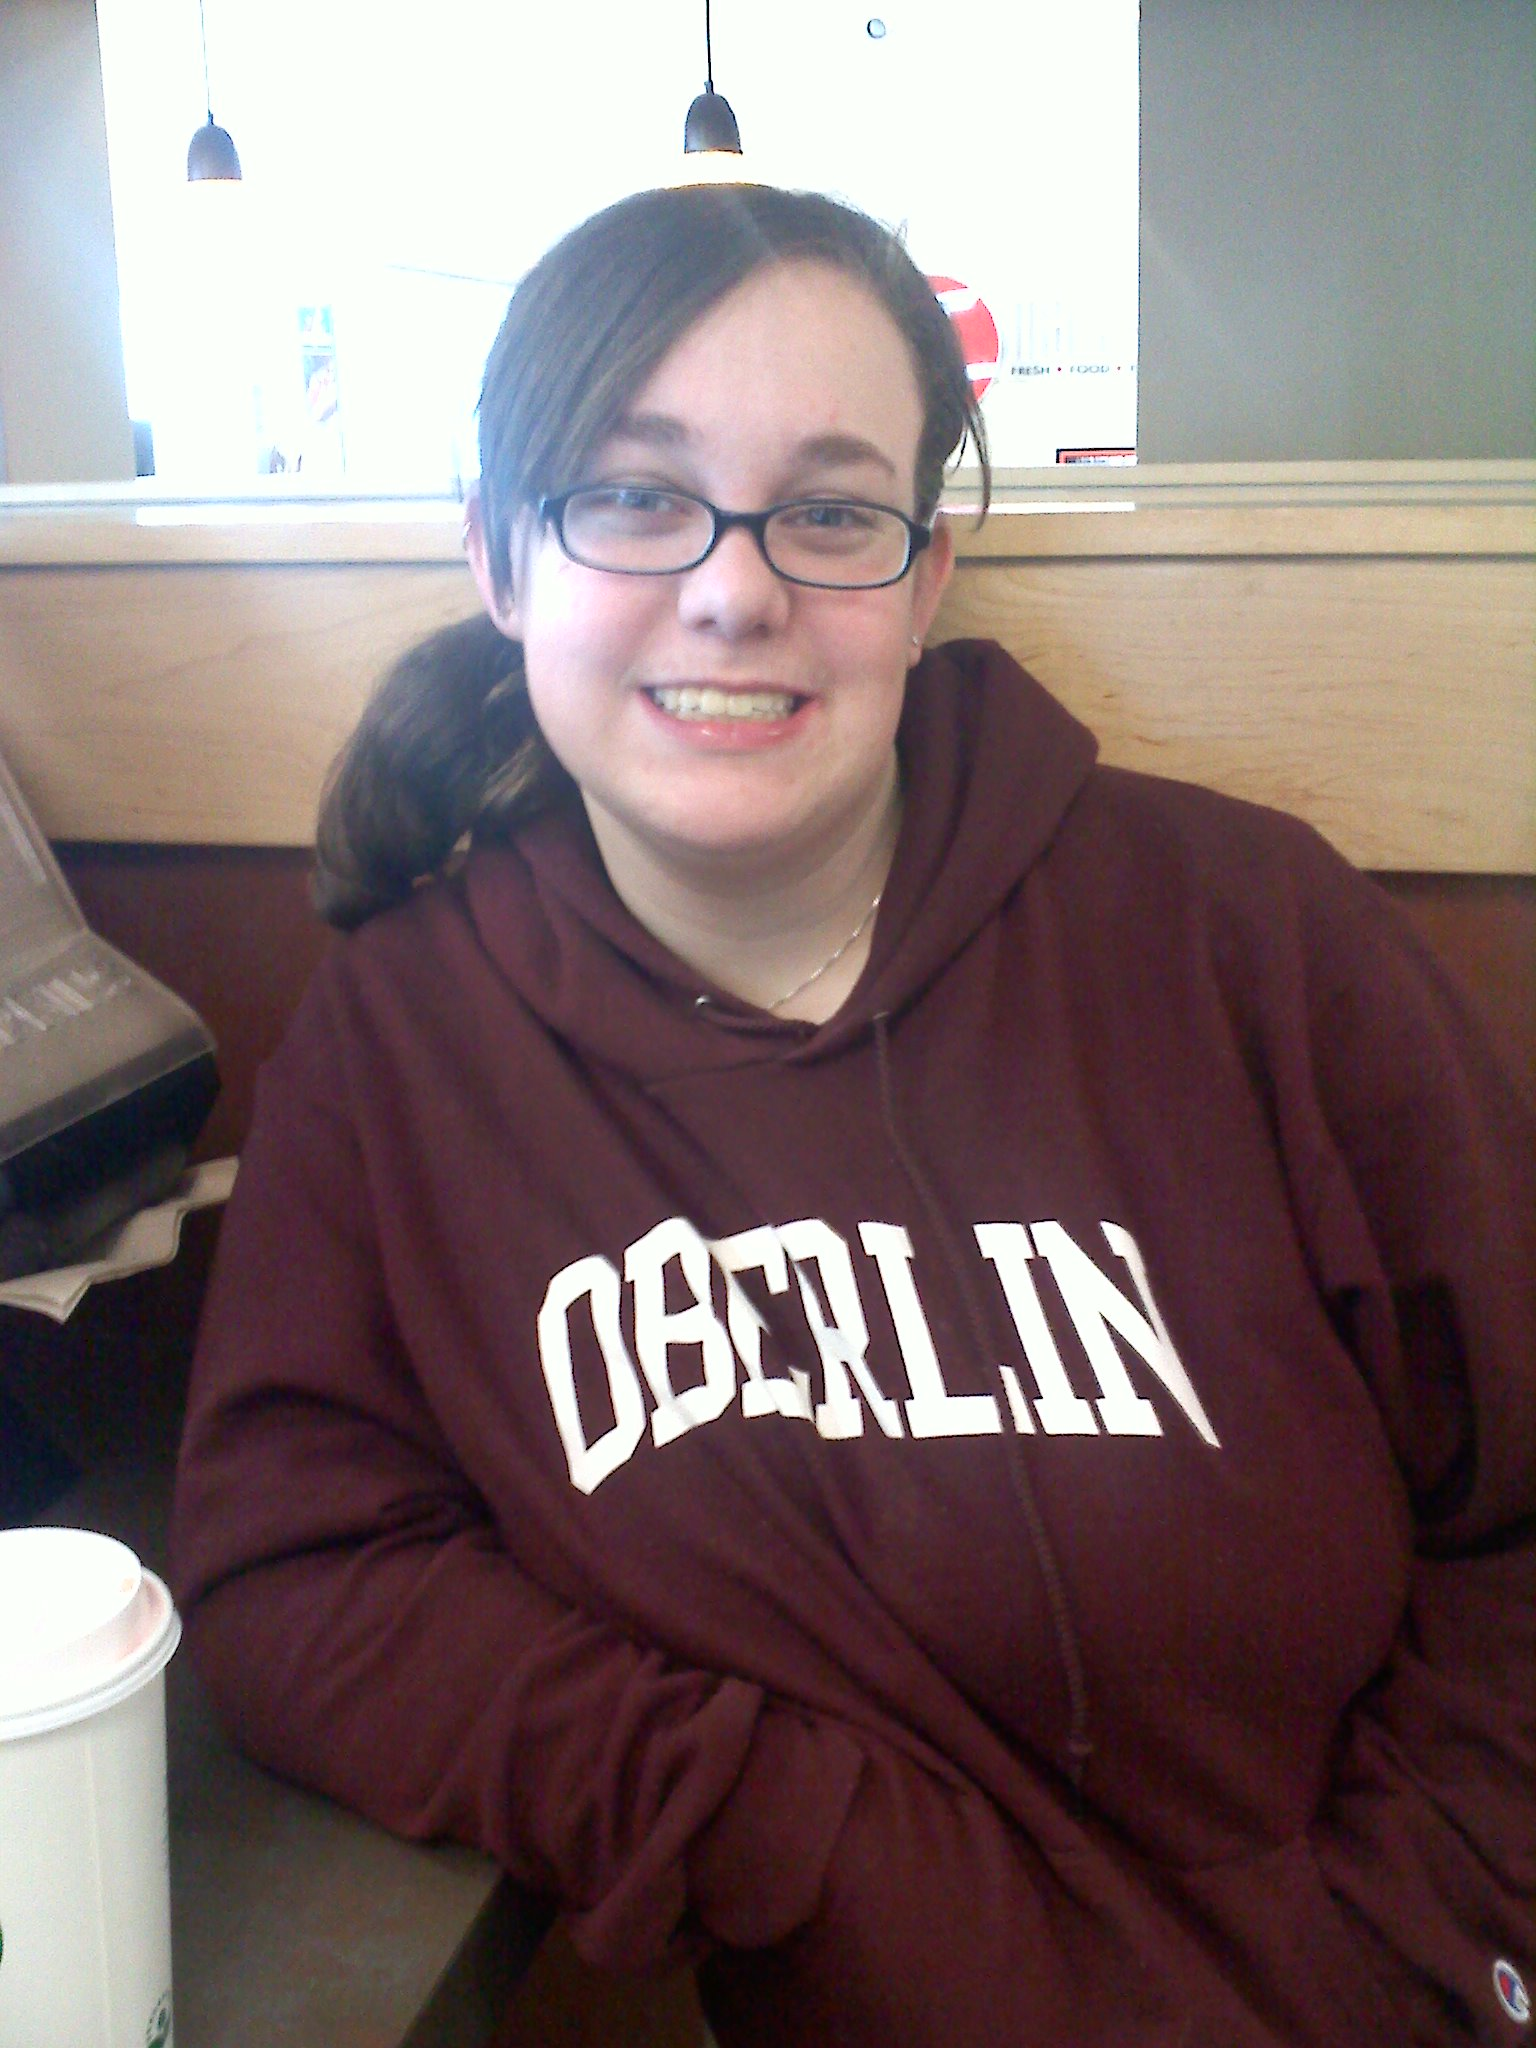 A student poses for a photo wearing an Oberlin sweatshirt